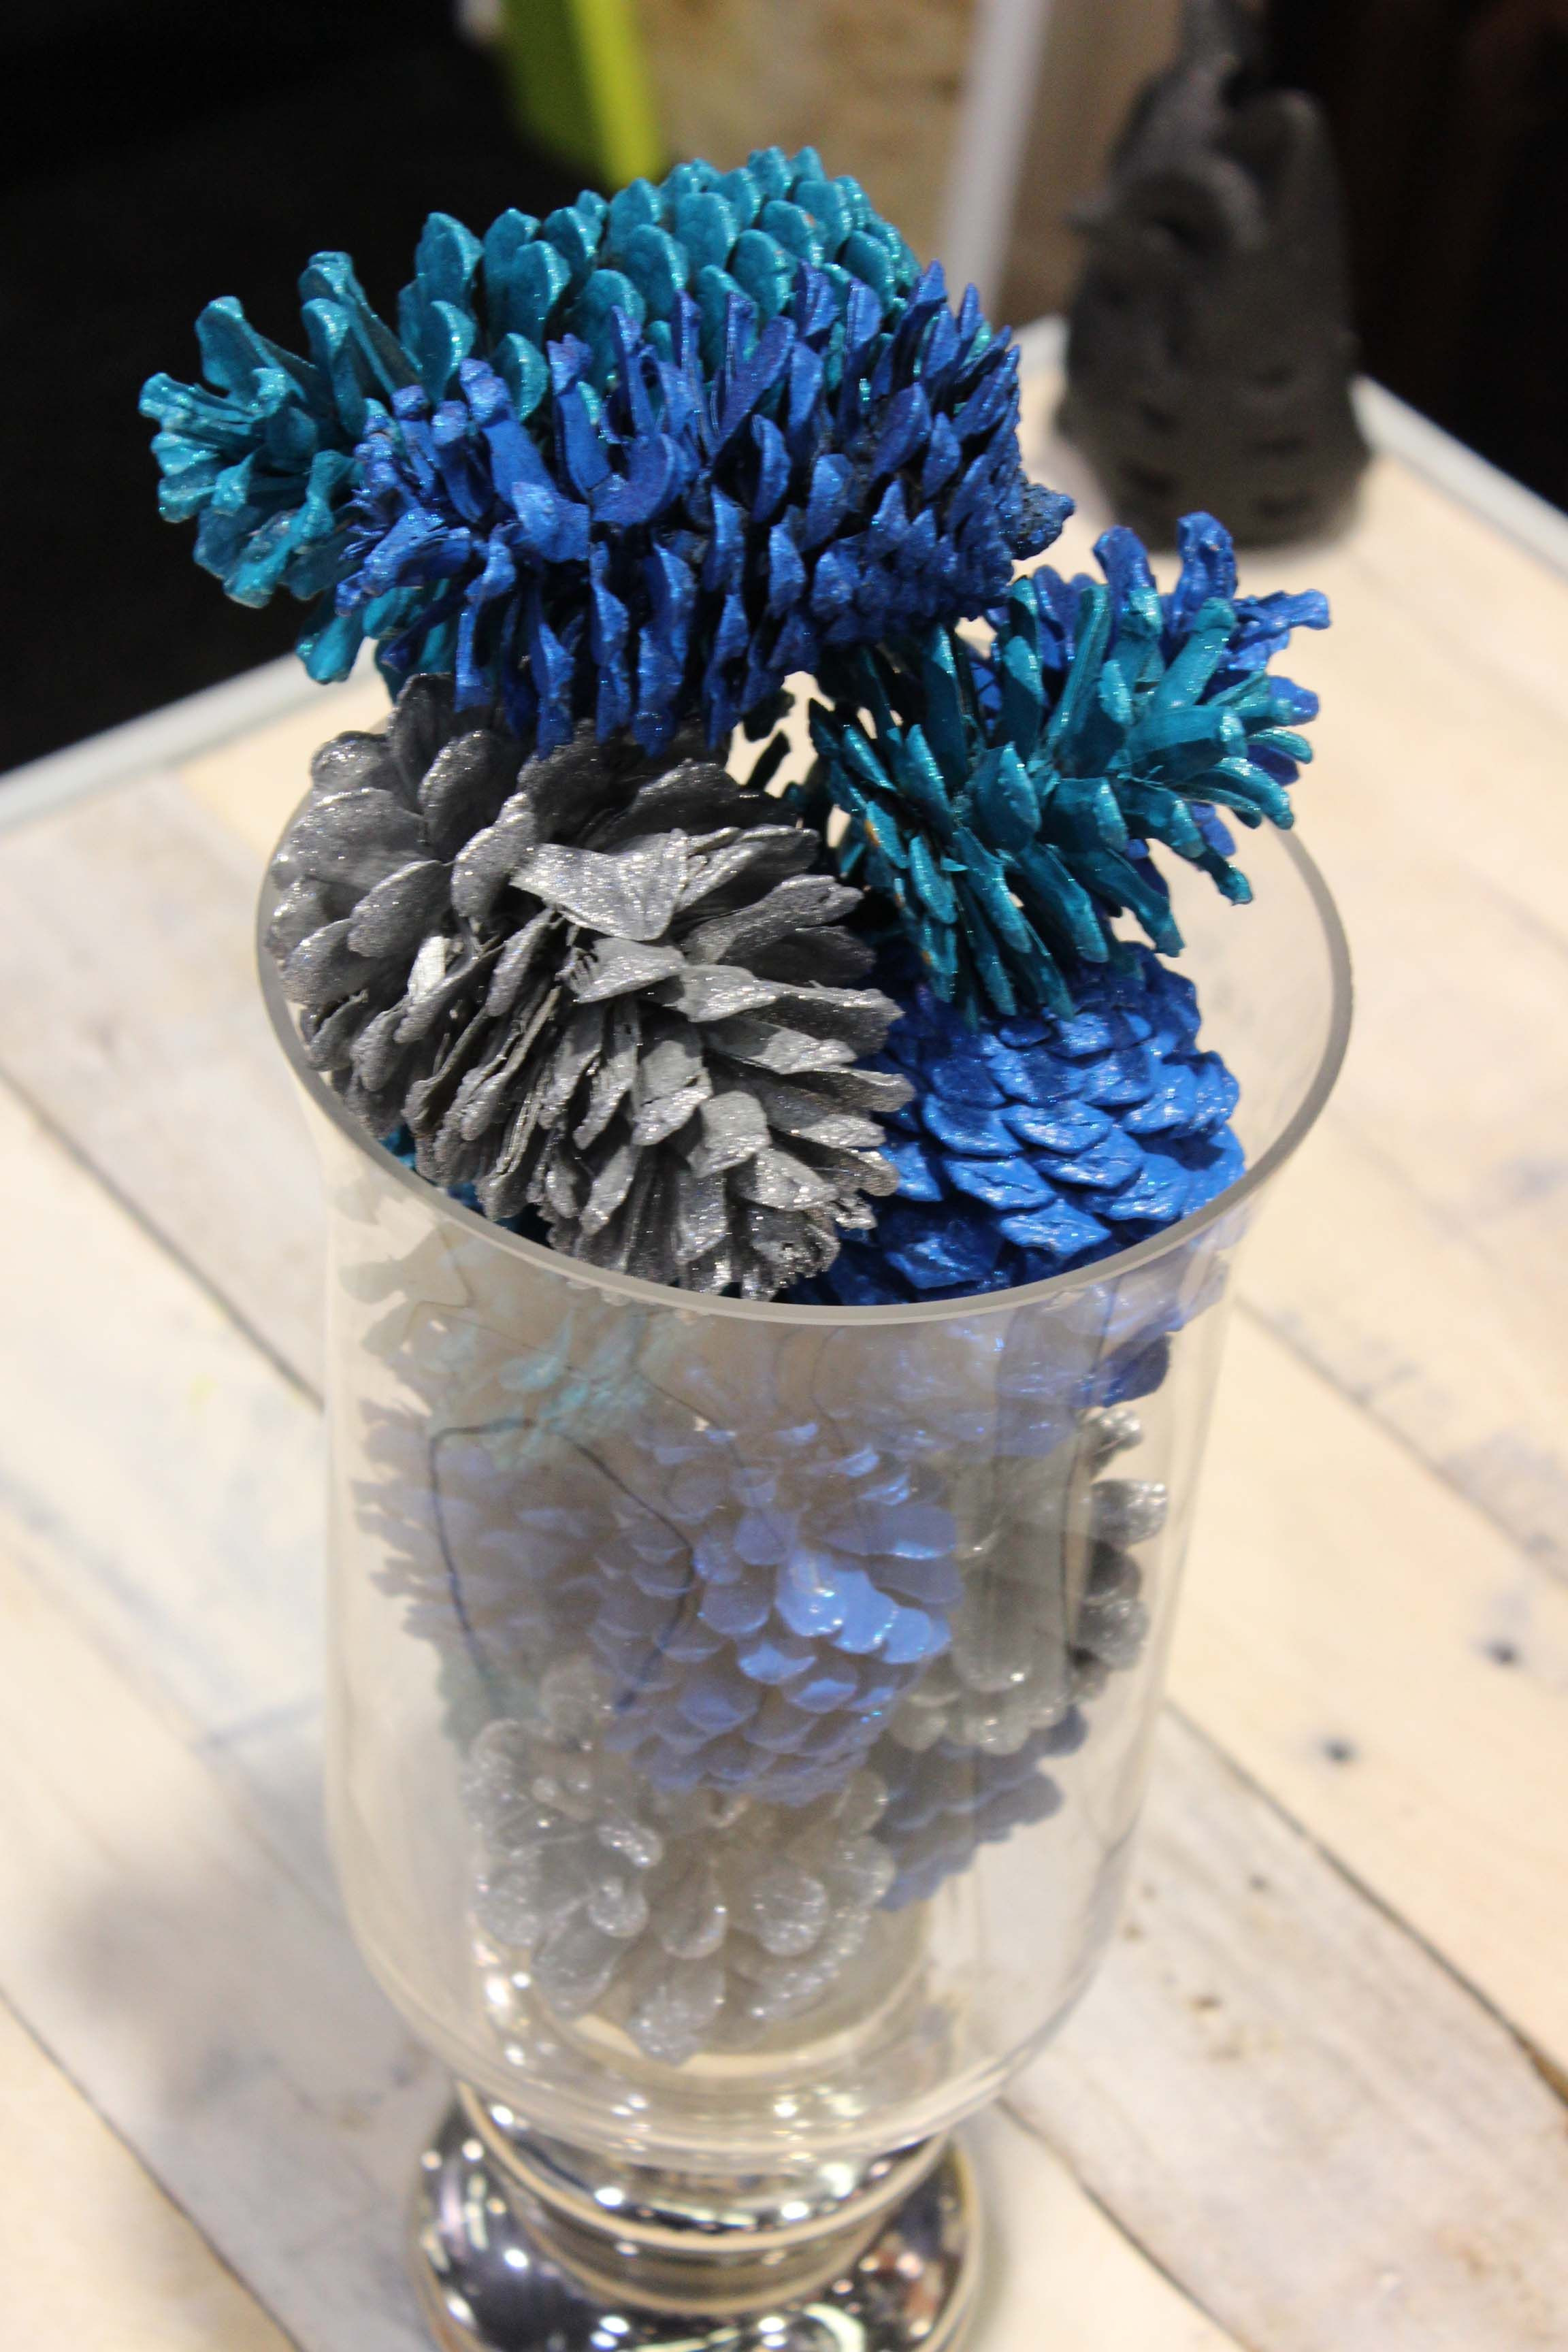 Diy Vase Fillers Of Rust Oleum Spray Painted Glitter Pine Cones as A Vase Filler for Throughout Rust Oleum Spray Painted Glitter Pine Cones as A Vase Filler